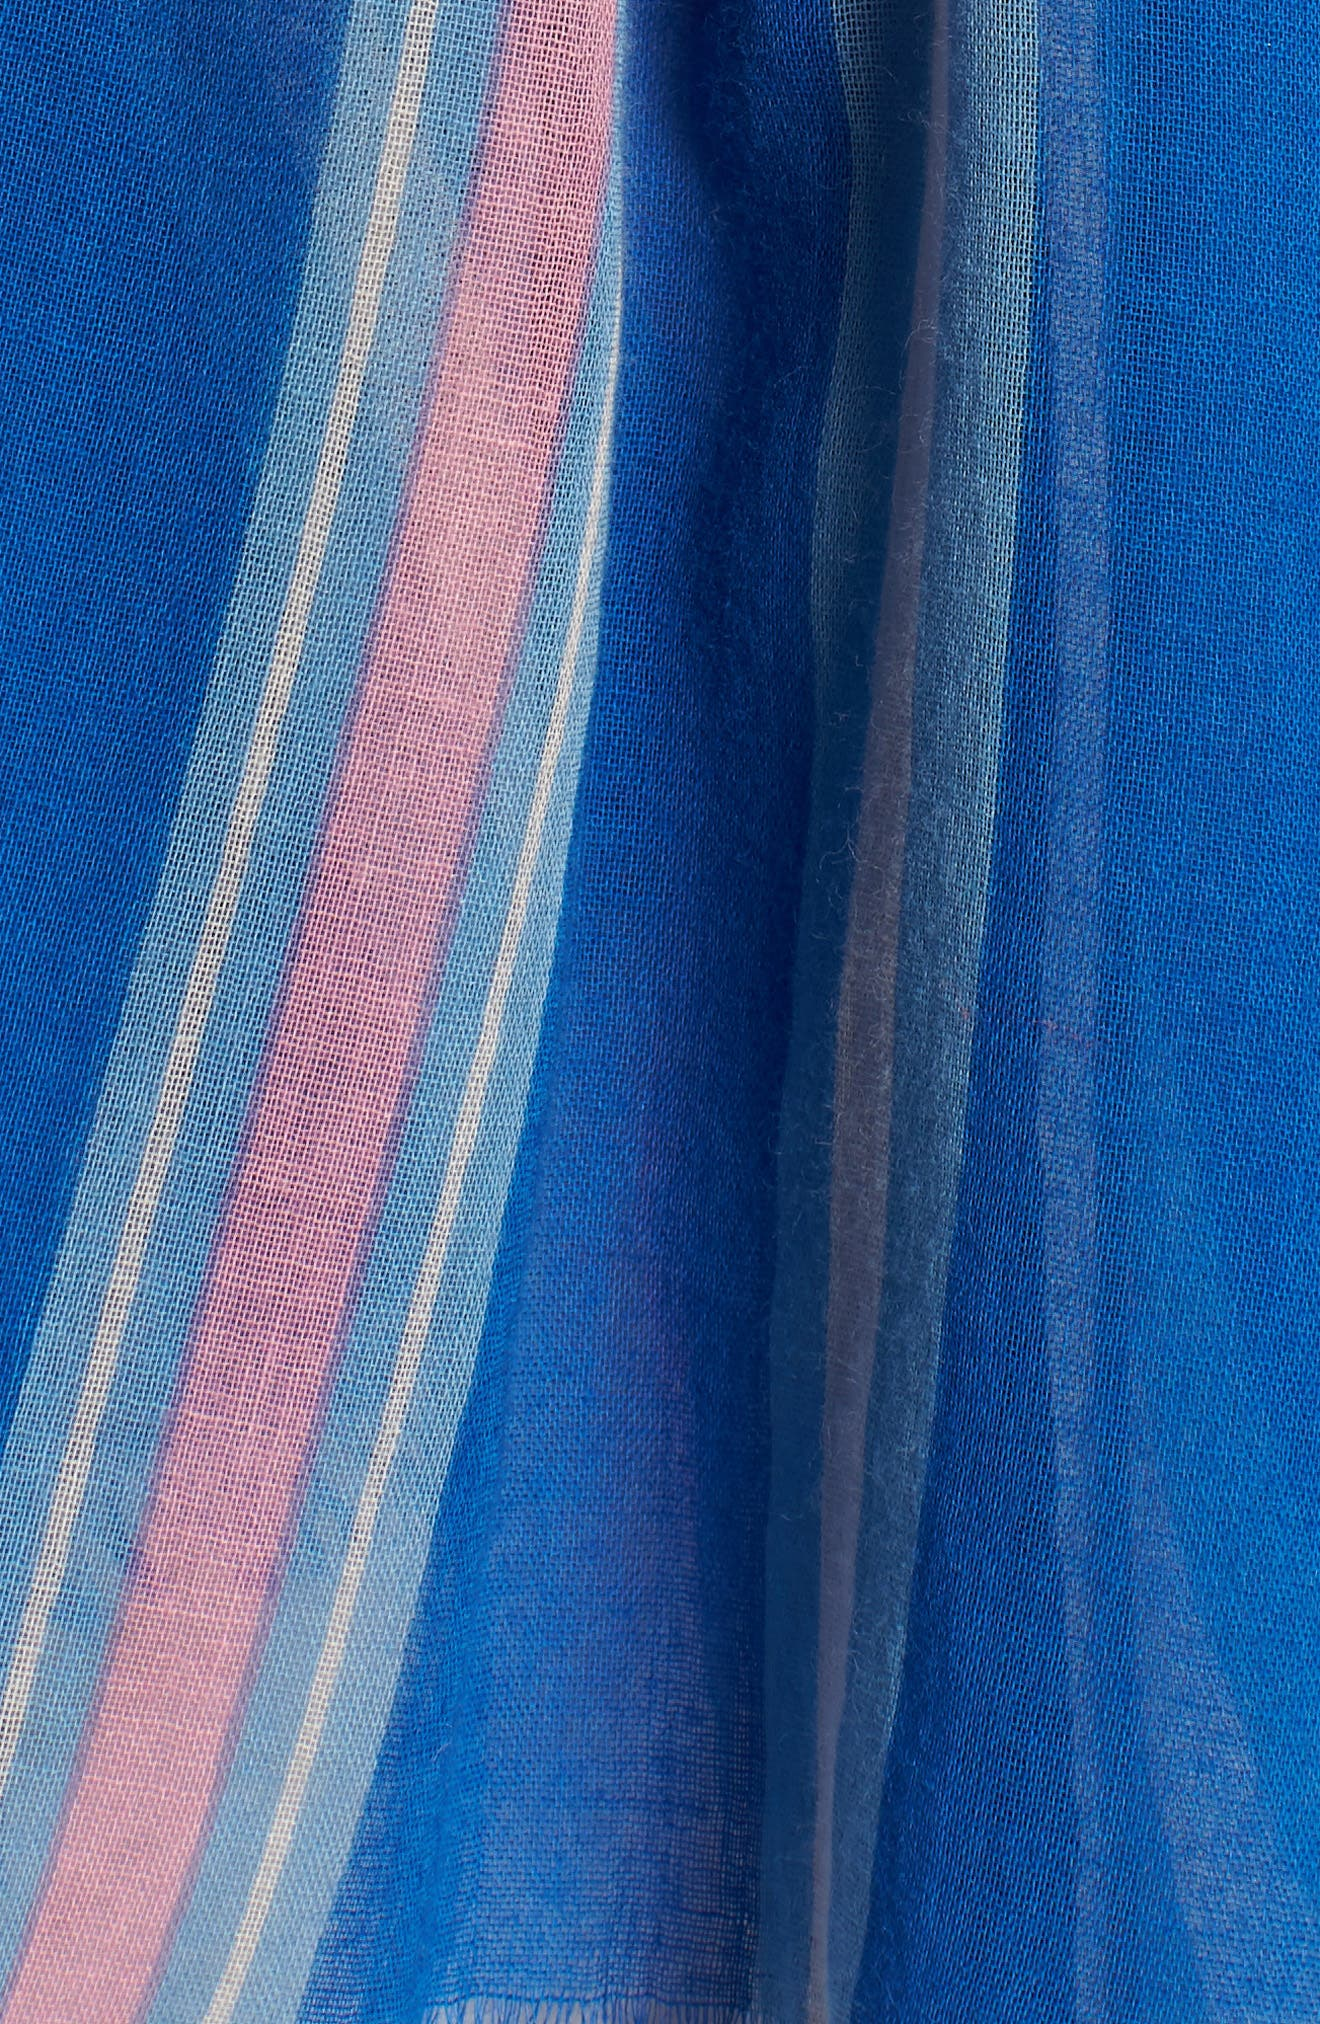 Stripe Sarong,                             Alternate thumbnail 5, color,                             Blue/Pink/Red